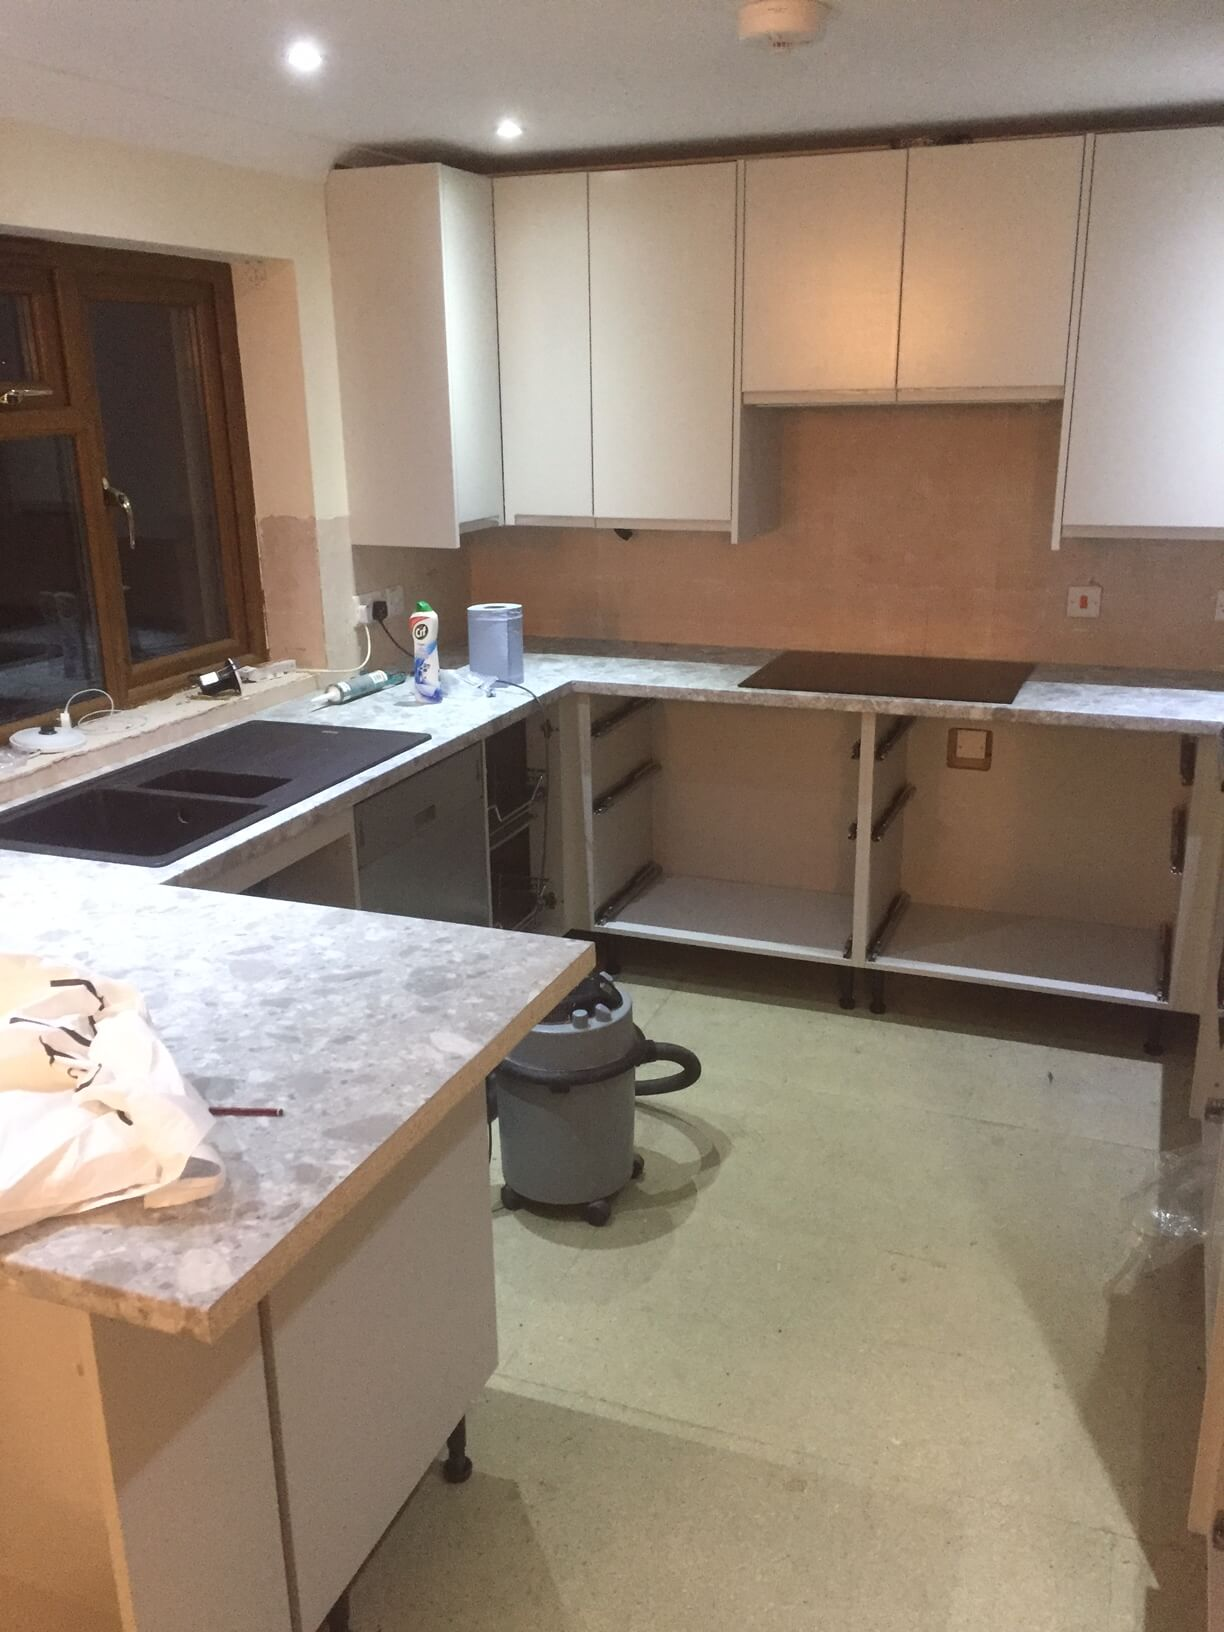 Starting the worktop